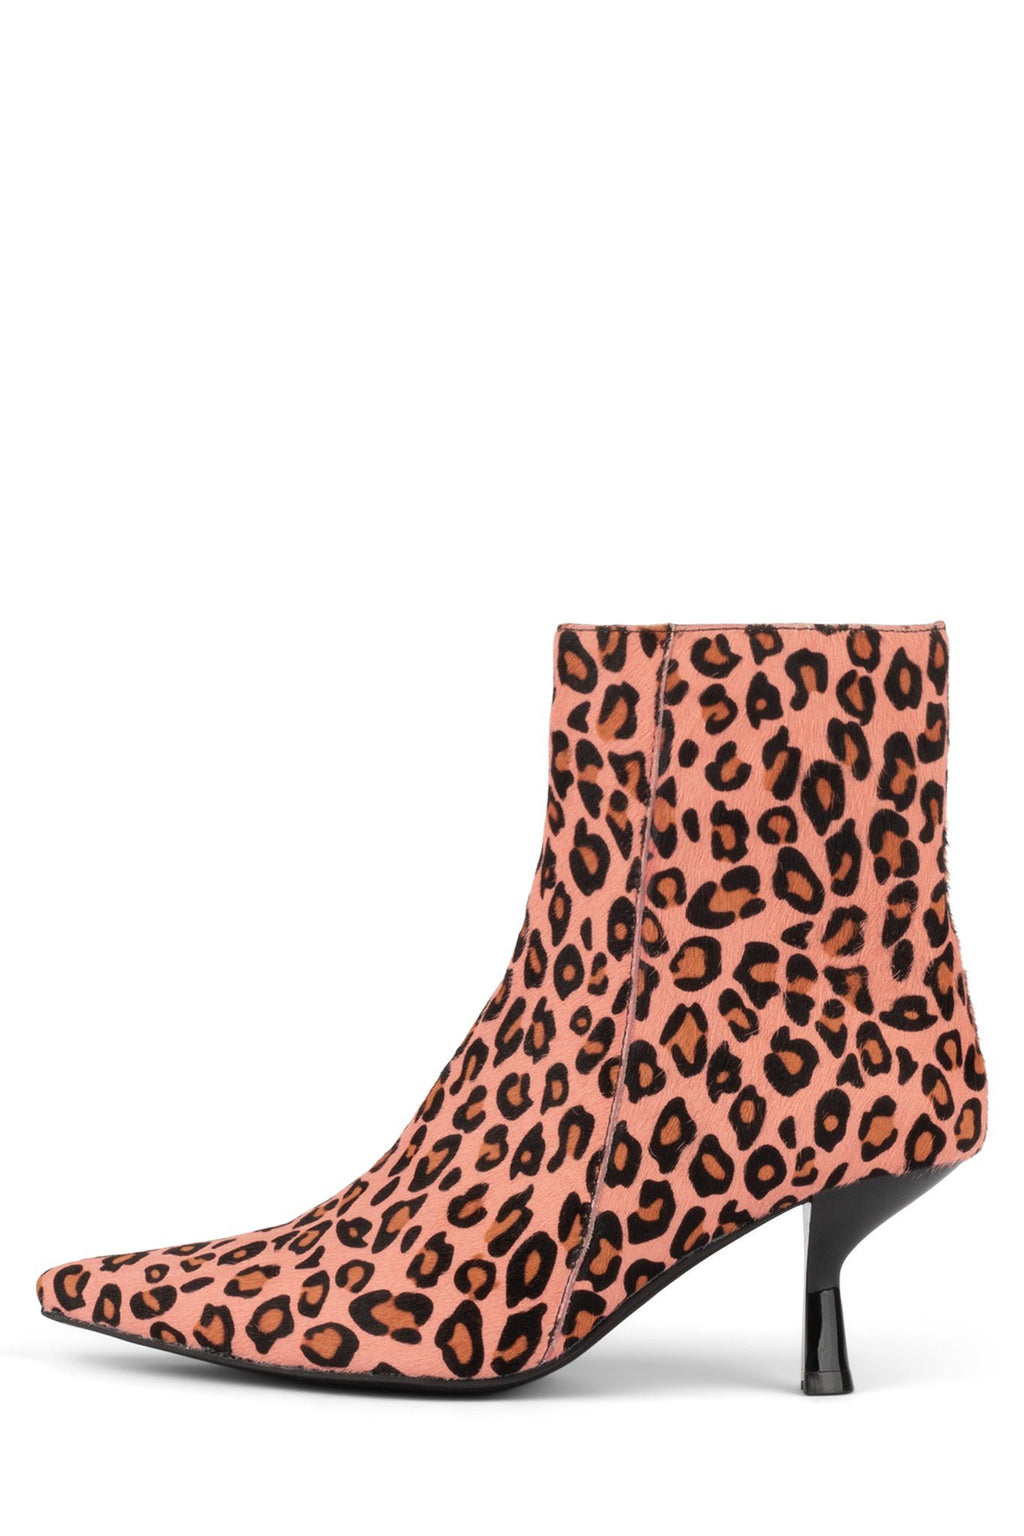 EGNYTE-F Heeled Bootie YYH Pink Black Cheetah 6